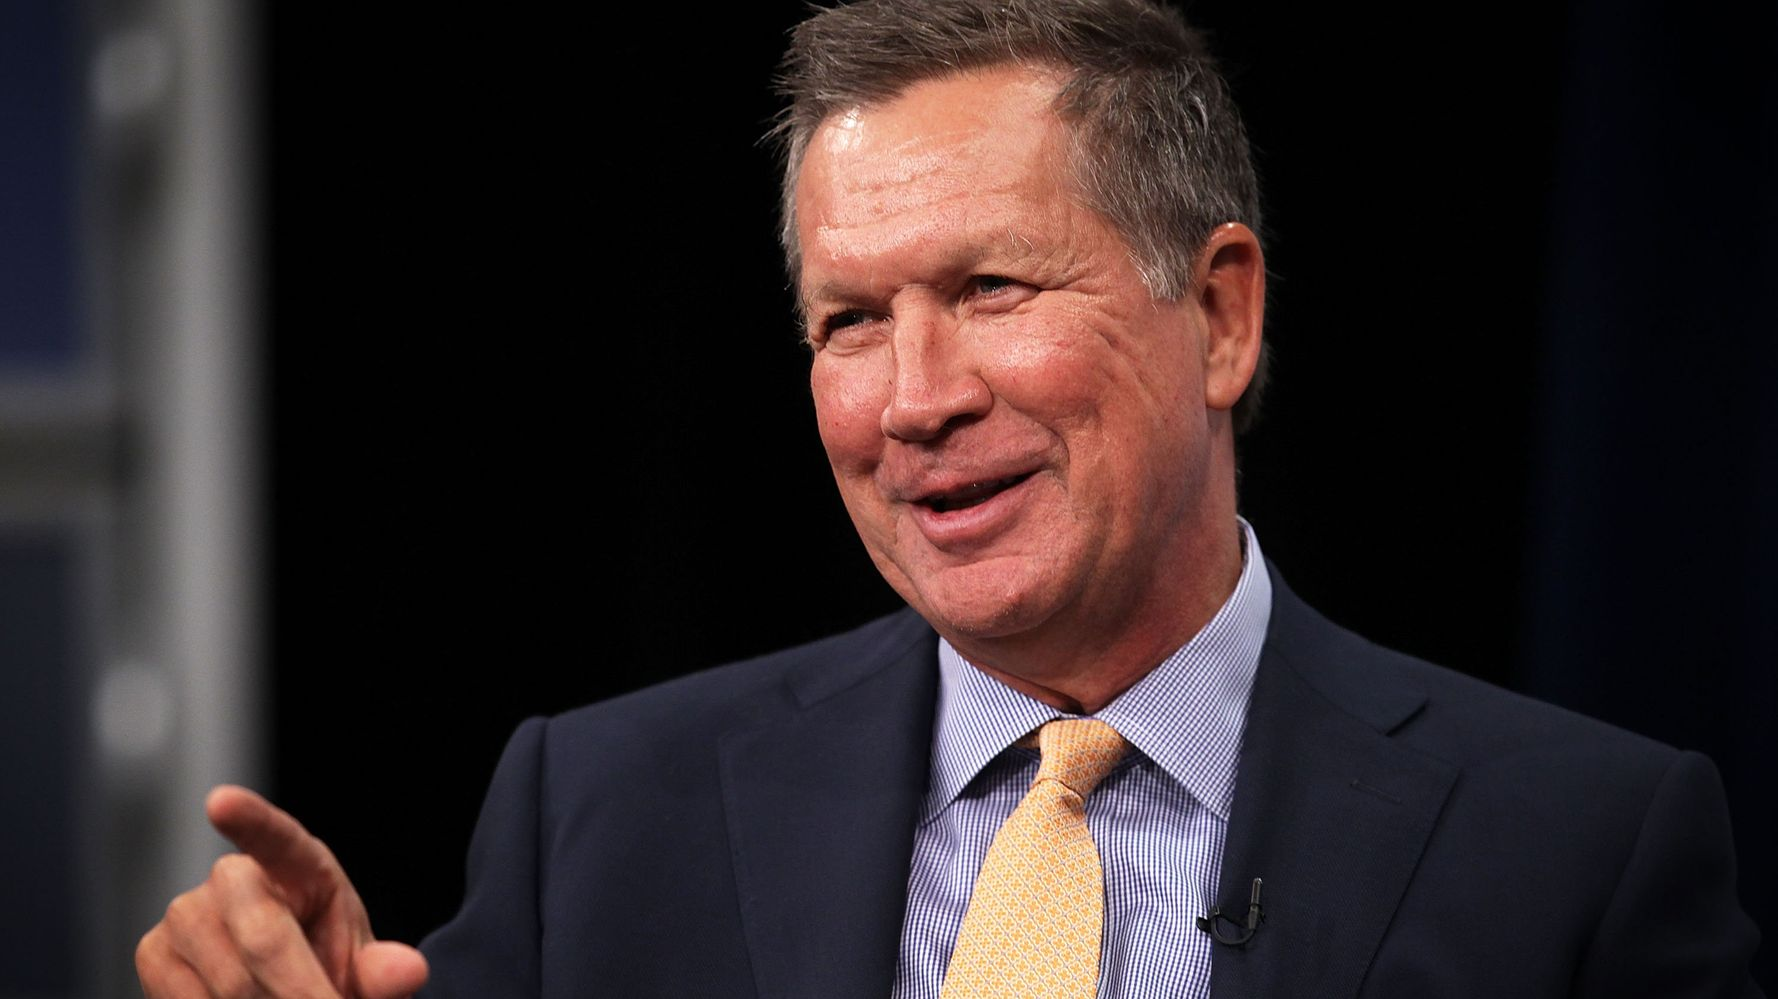 John Kasich Tells Critics Of Medicaid Expansion To Read The Bible